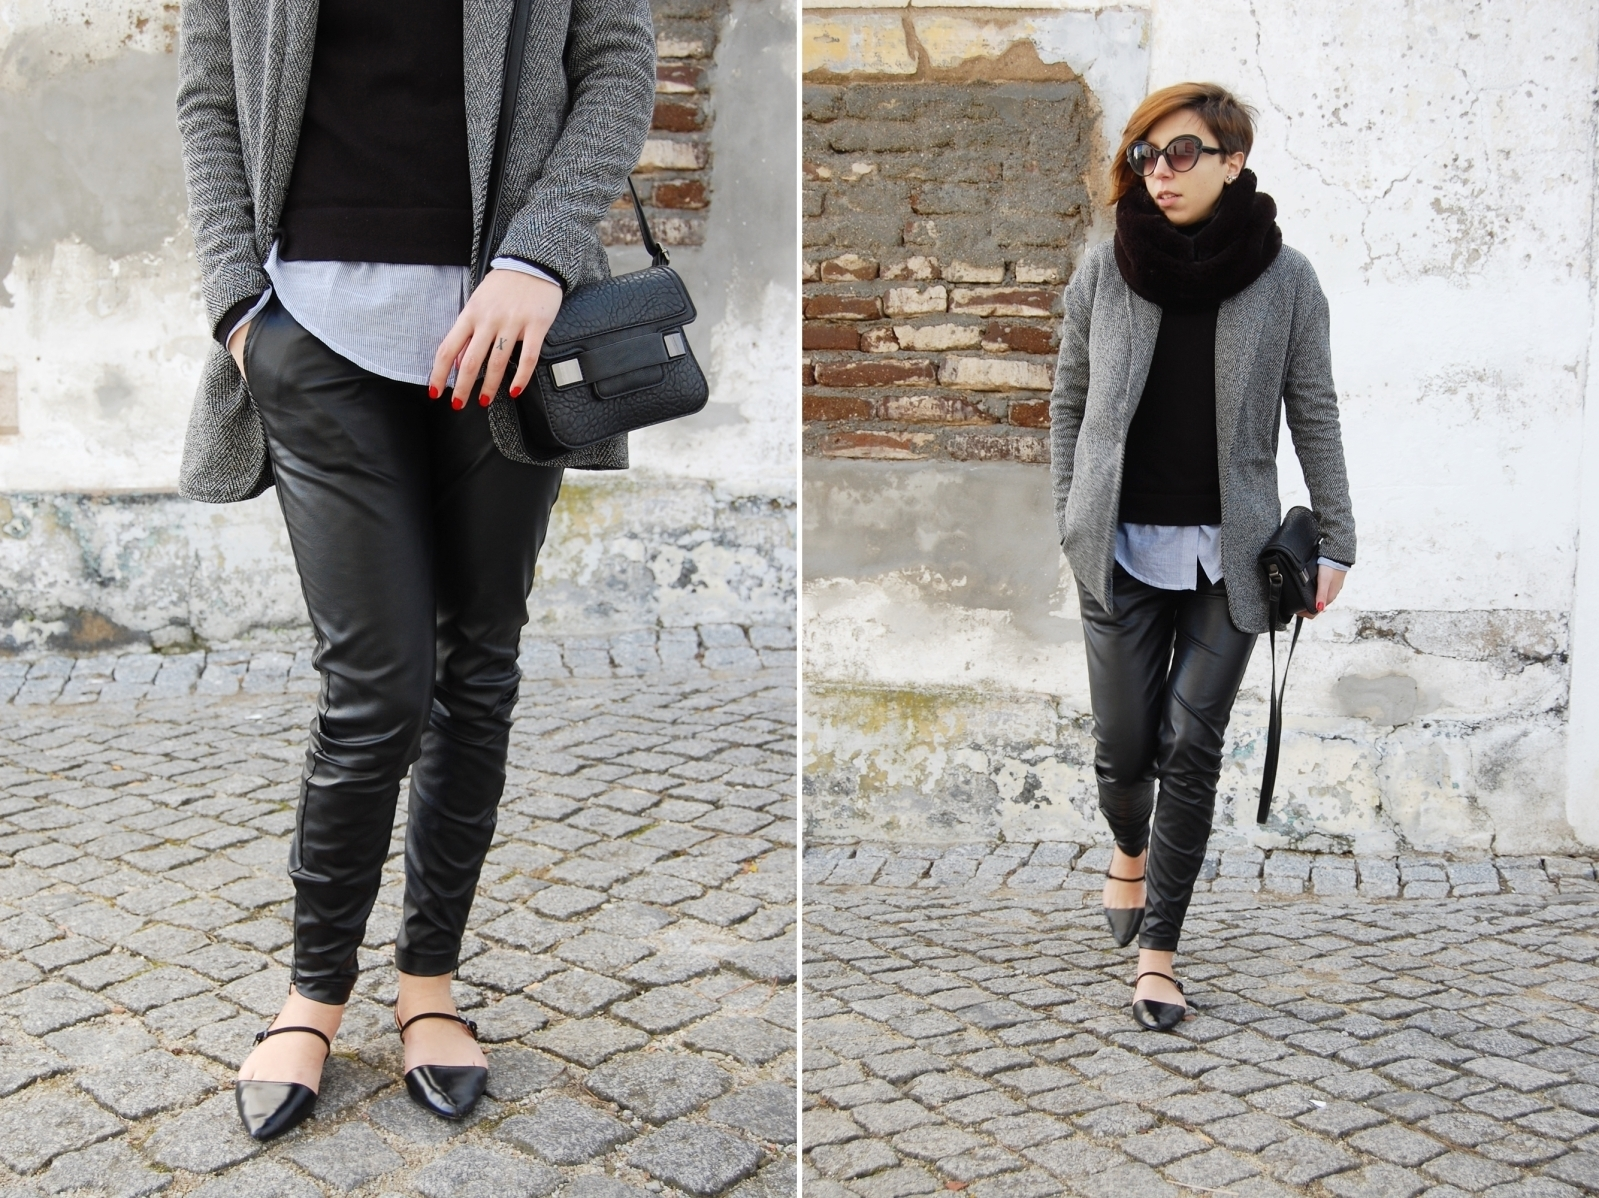 Brilliant Young Woman Looks Comfortable Yet Stylish In Dress Pants With Sneakers